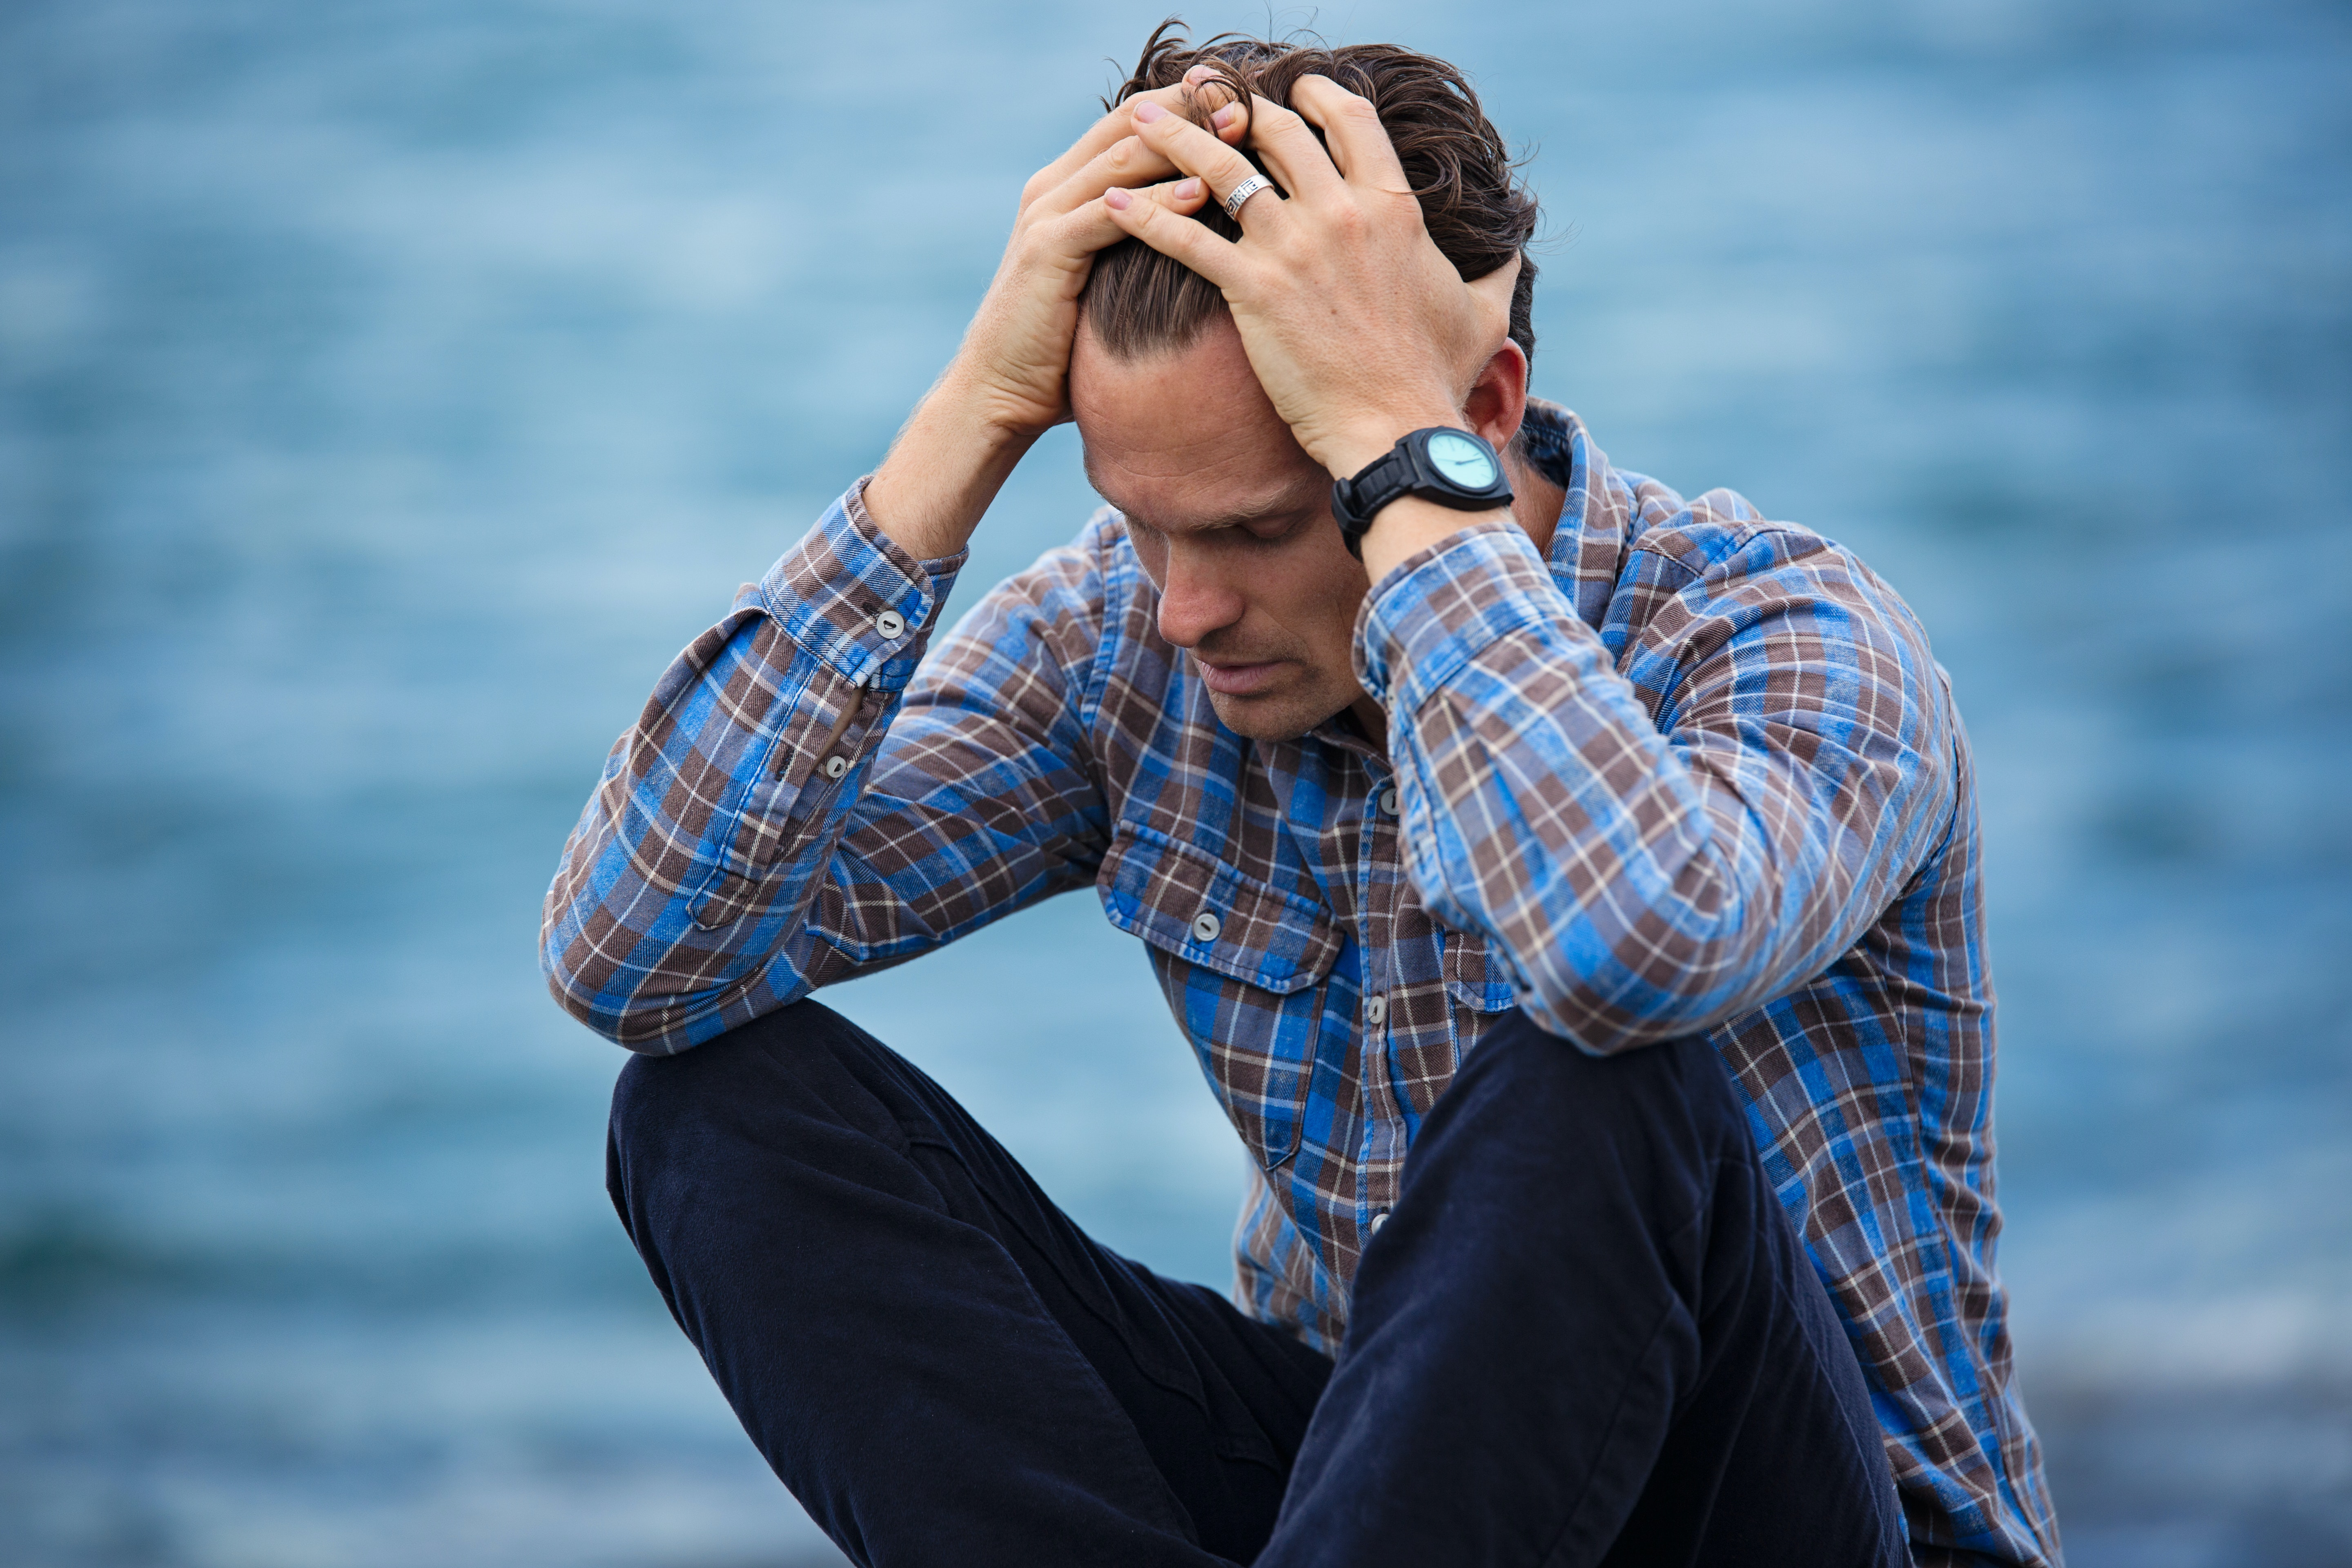 Man in blue and red striped shirt sitting down holding his head and staring at the ground